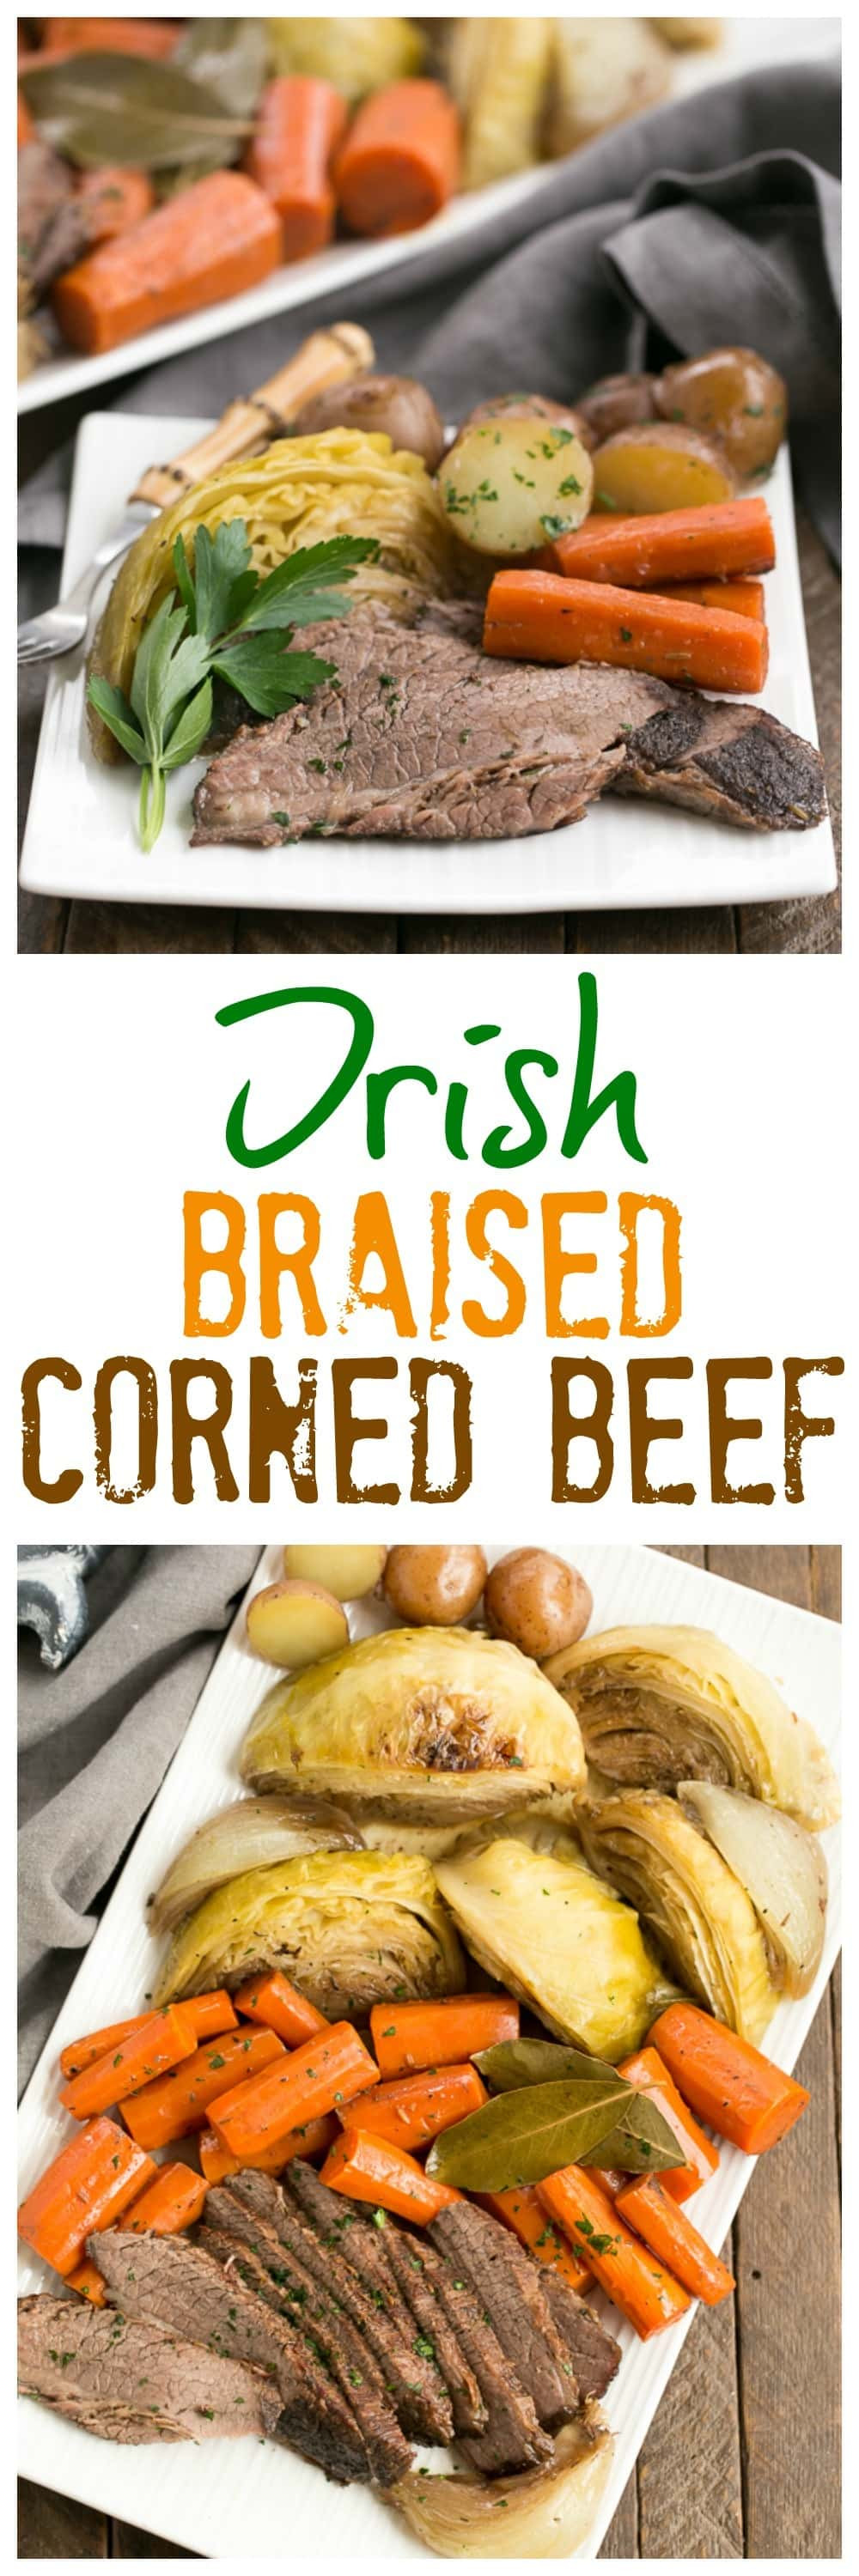 Spices For Corned Beef And Cabbage  Irish Braised Corned Beef and Cabbage That Skinny Chick